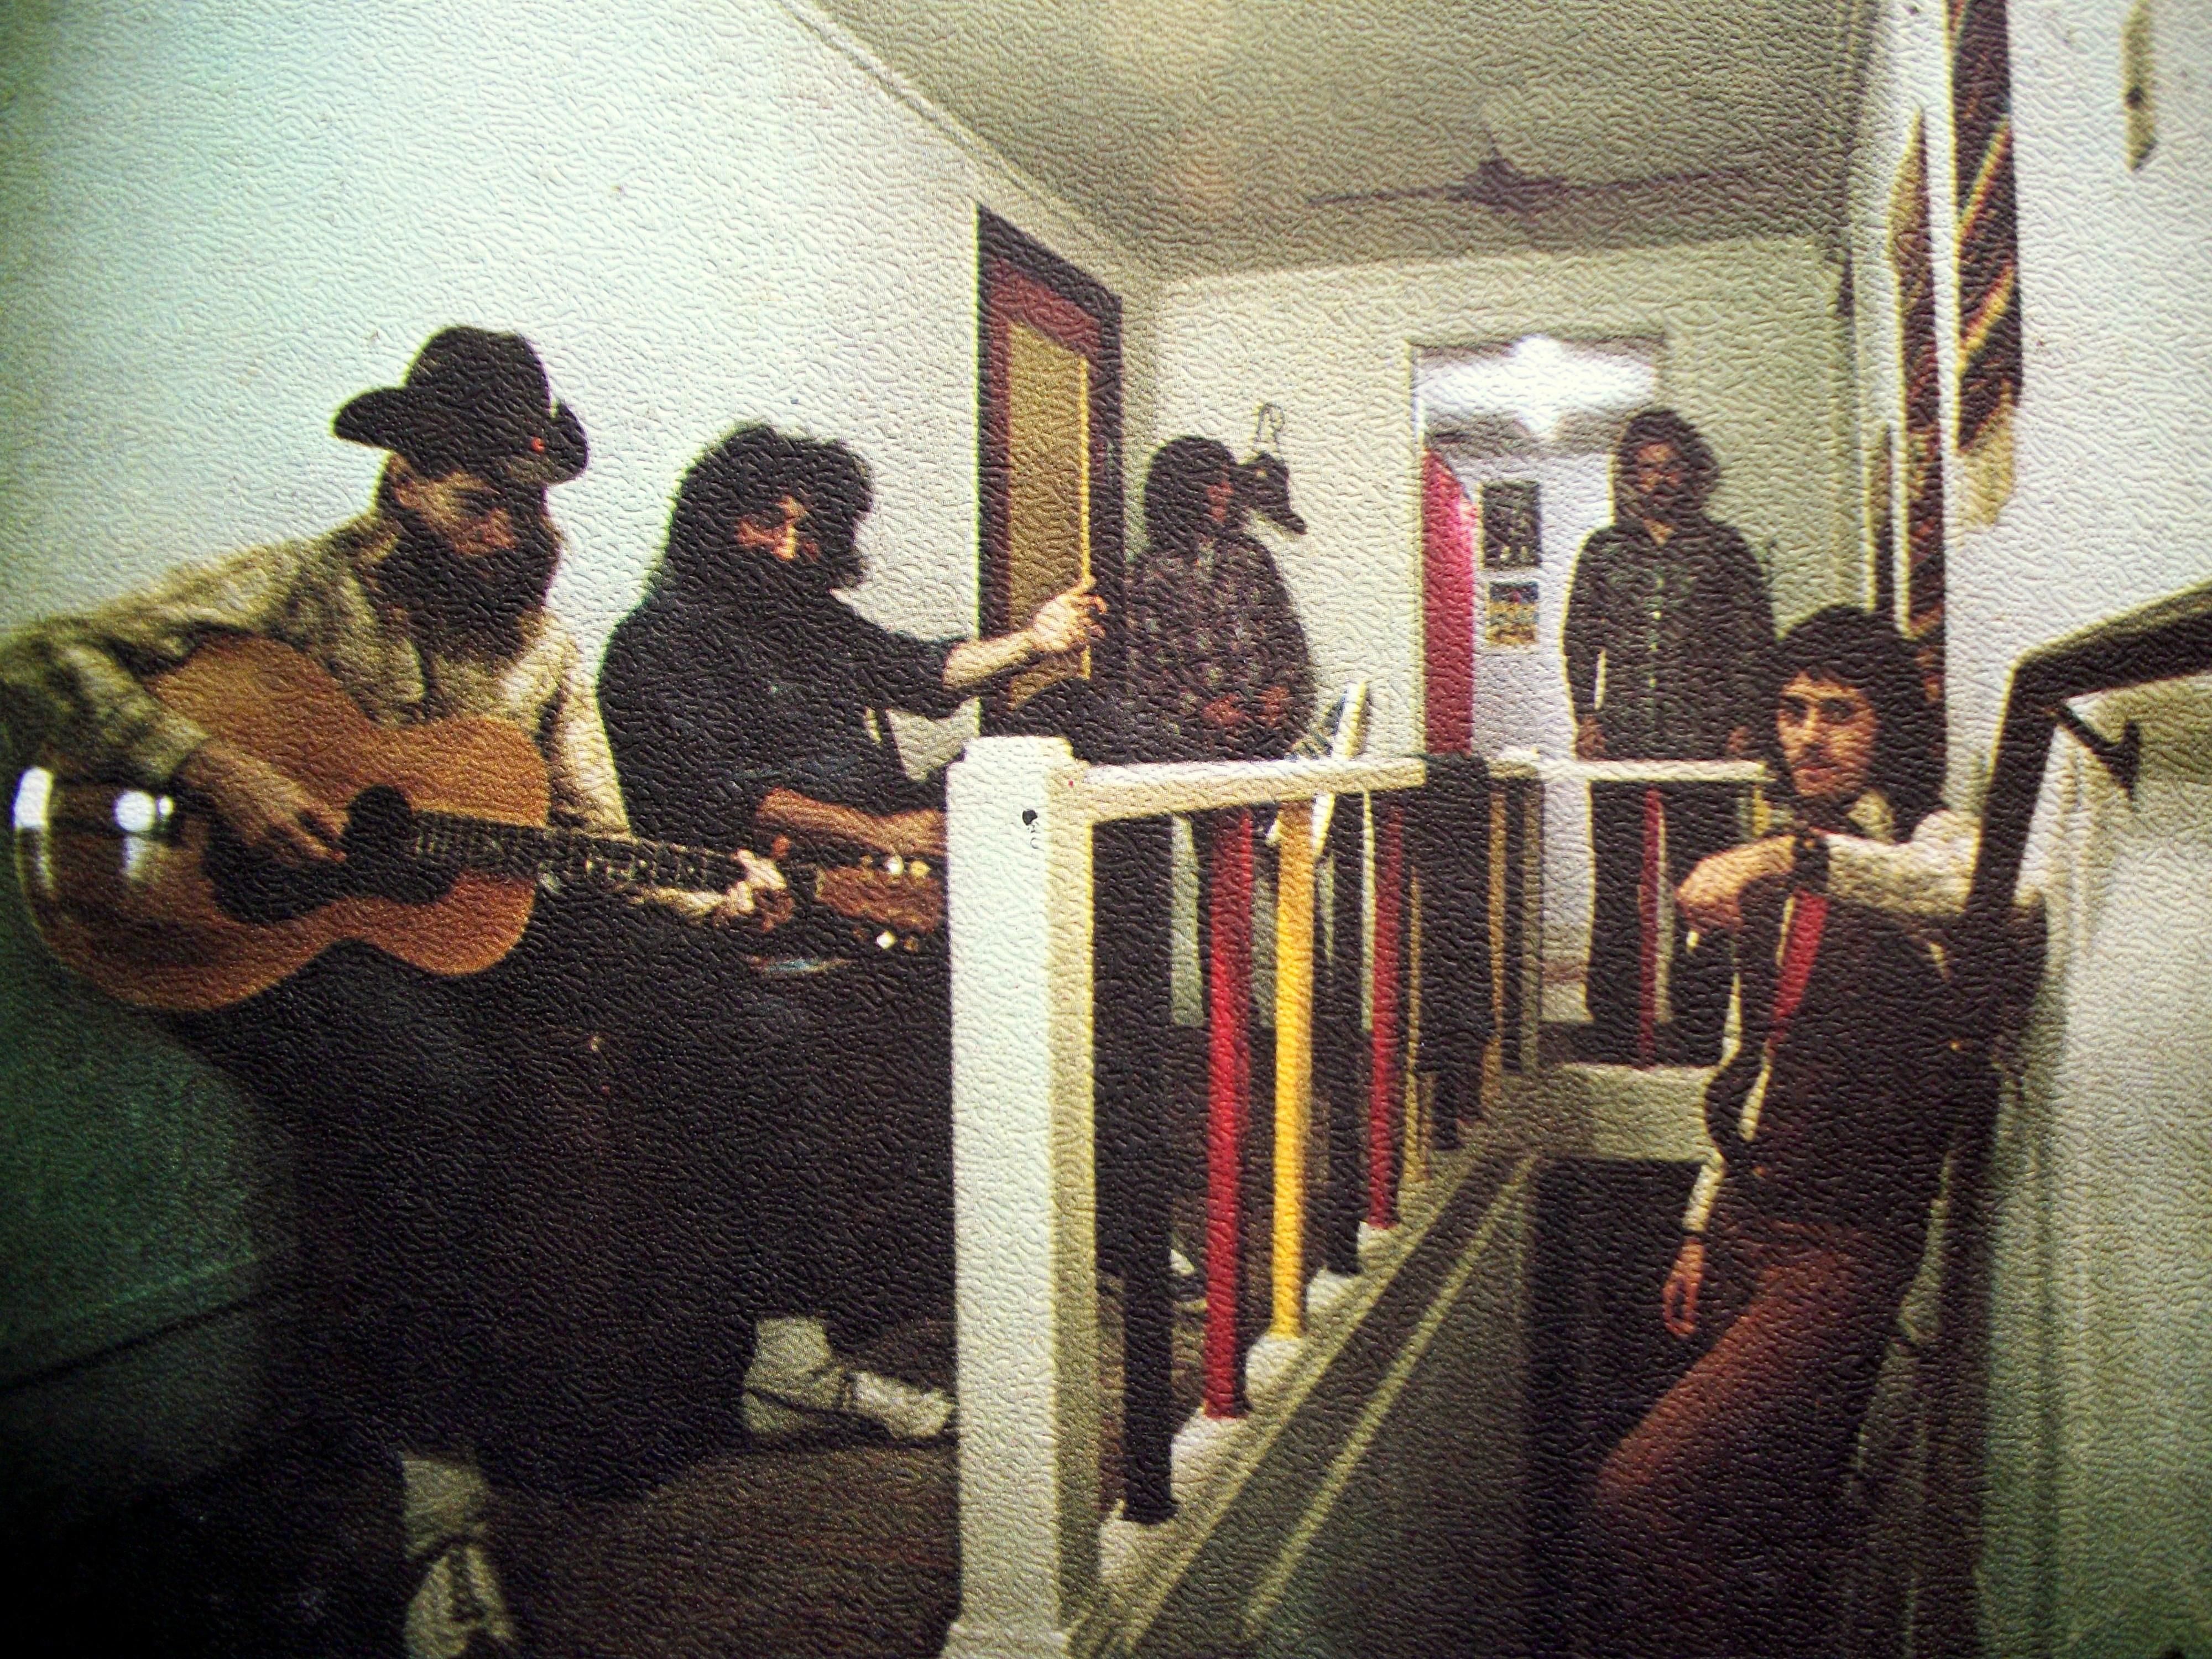 New Riders Of The Purple Sage - Feelin' All Right